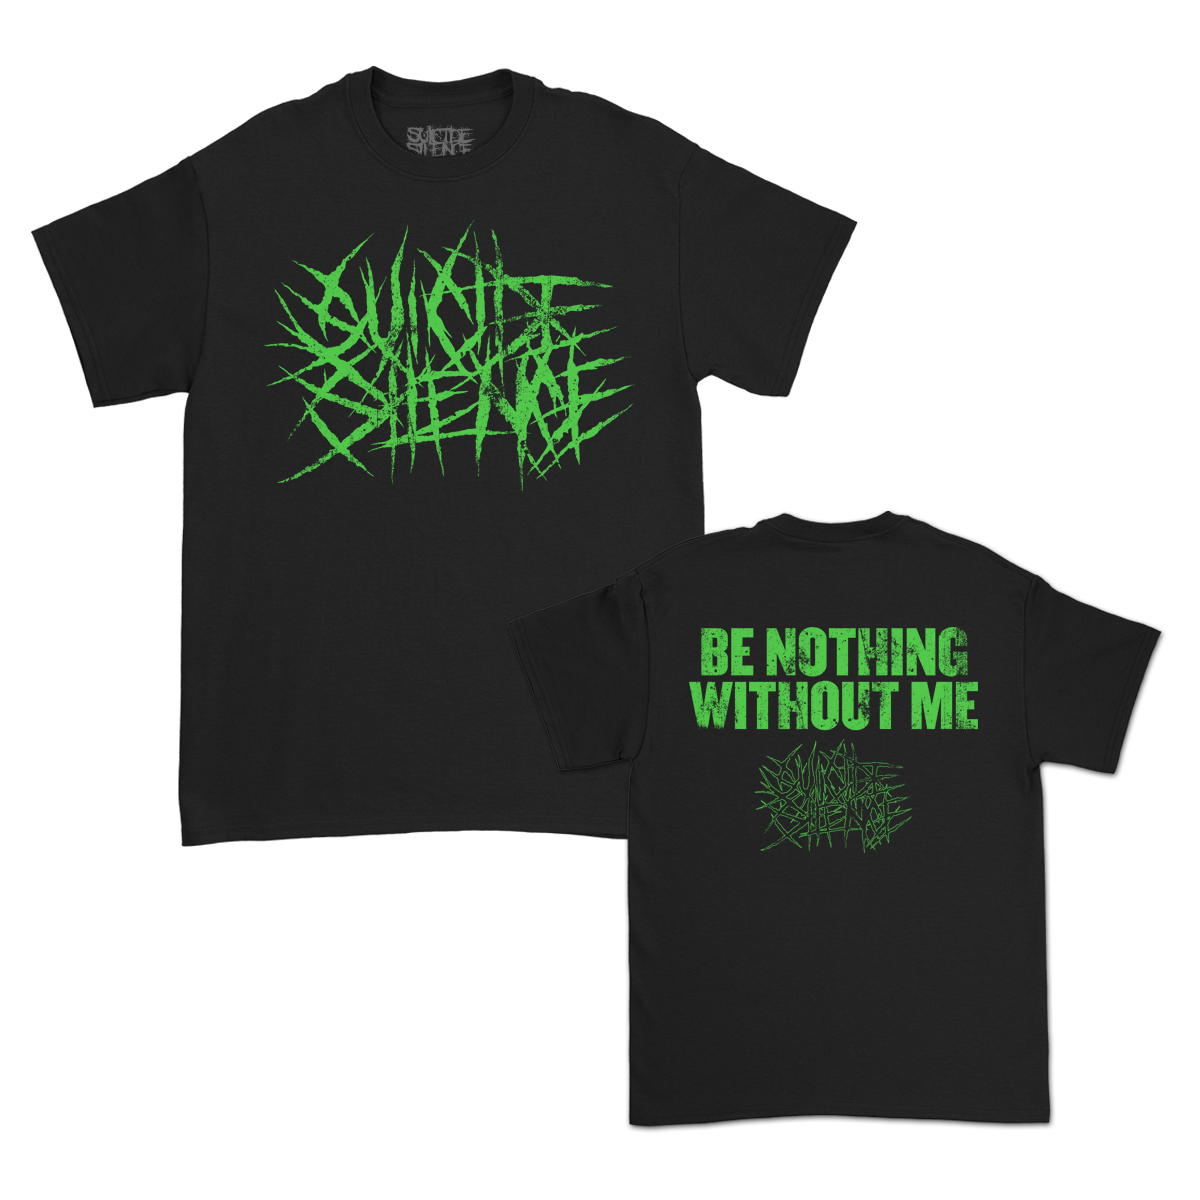 Be Nothing Without Me T-Shirt (Black)